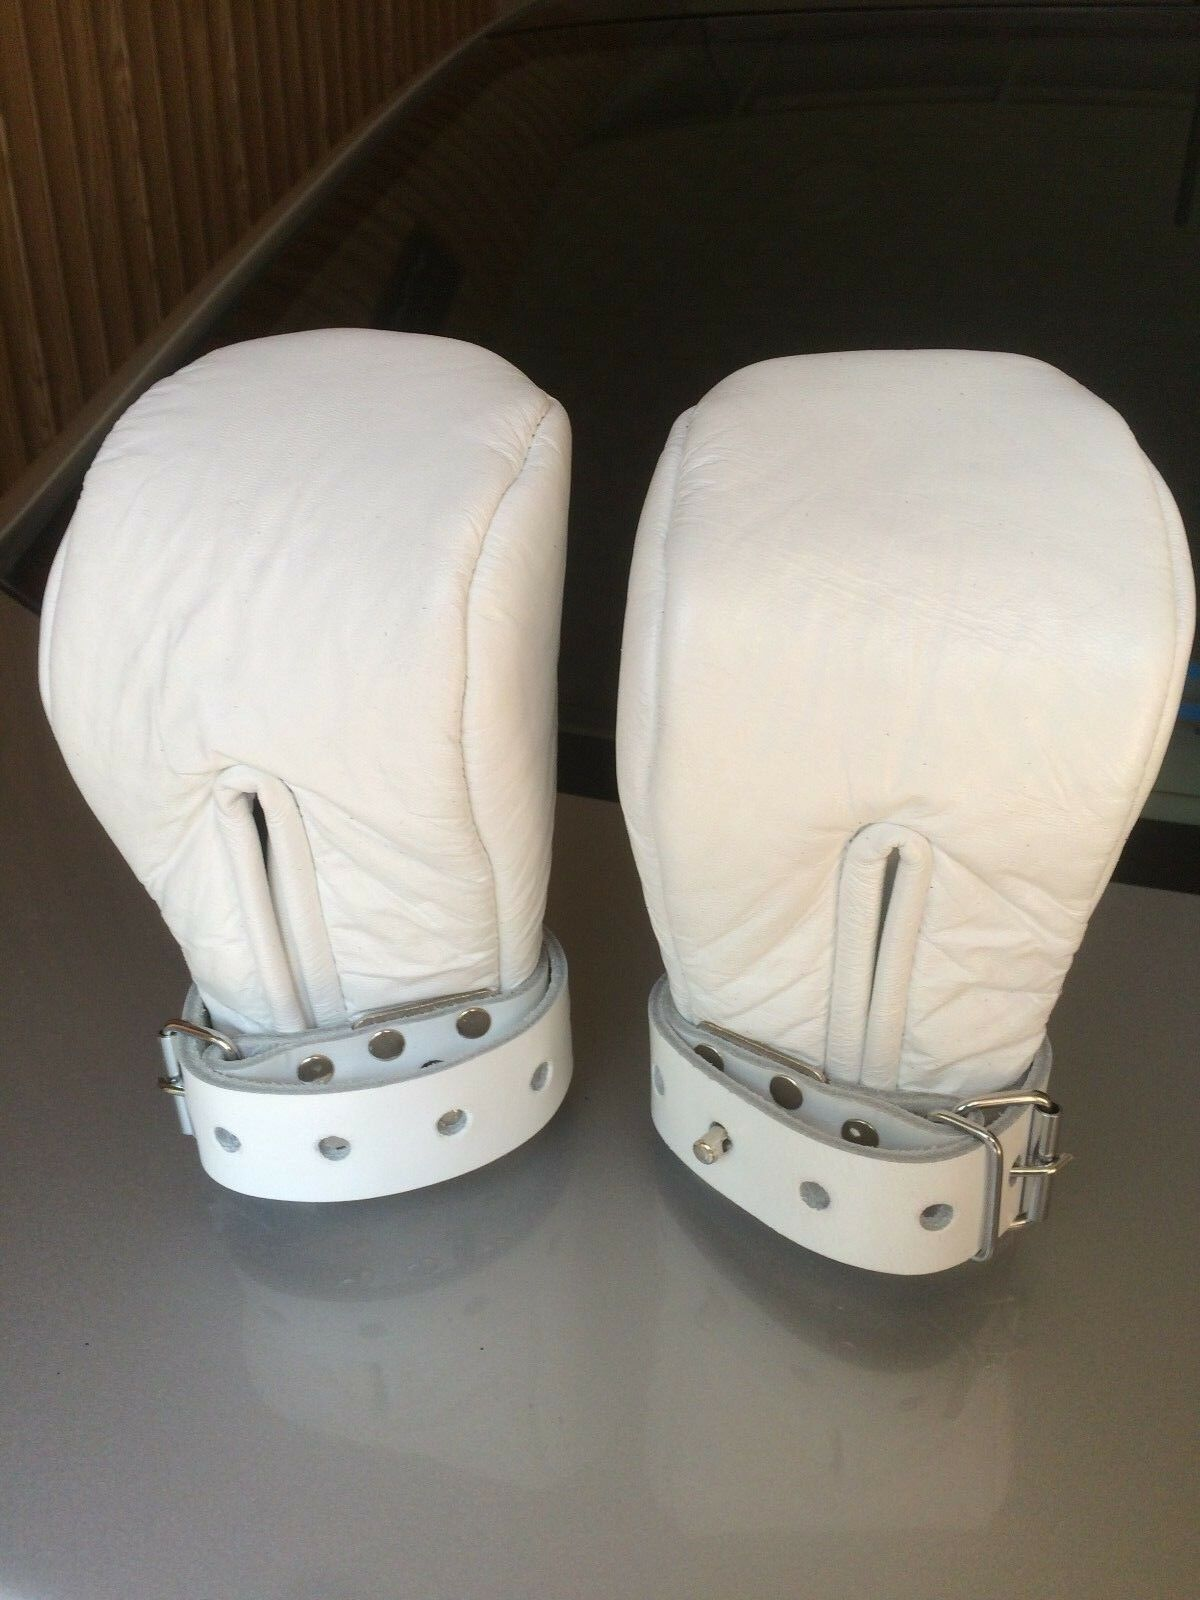 LEATHER BONDAGE ADULT MITTS  IN WHITE